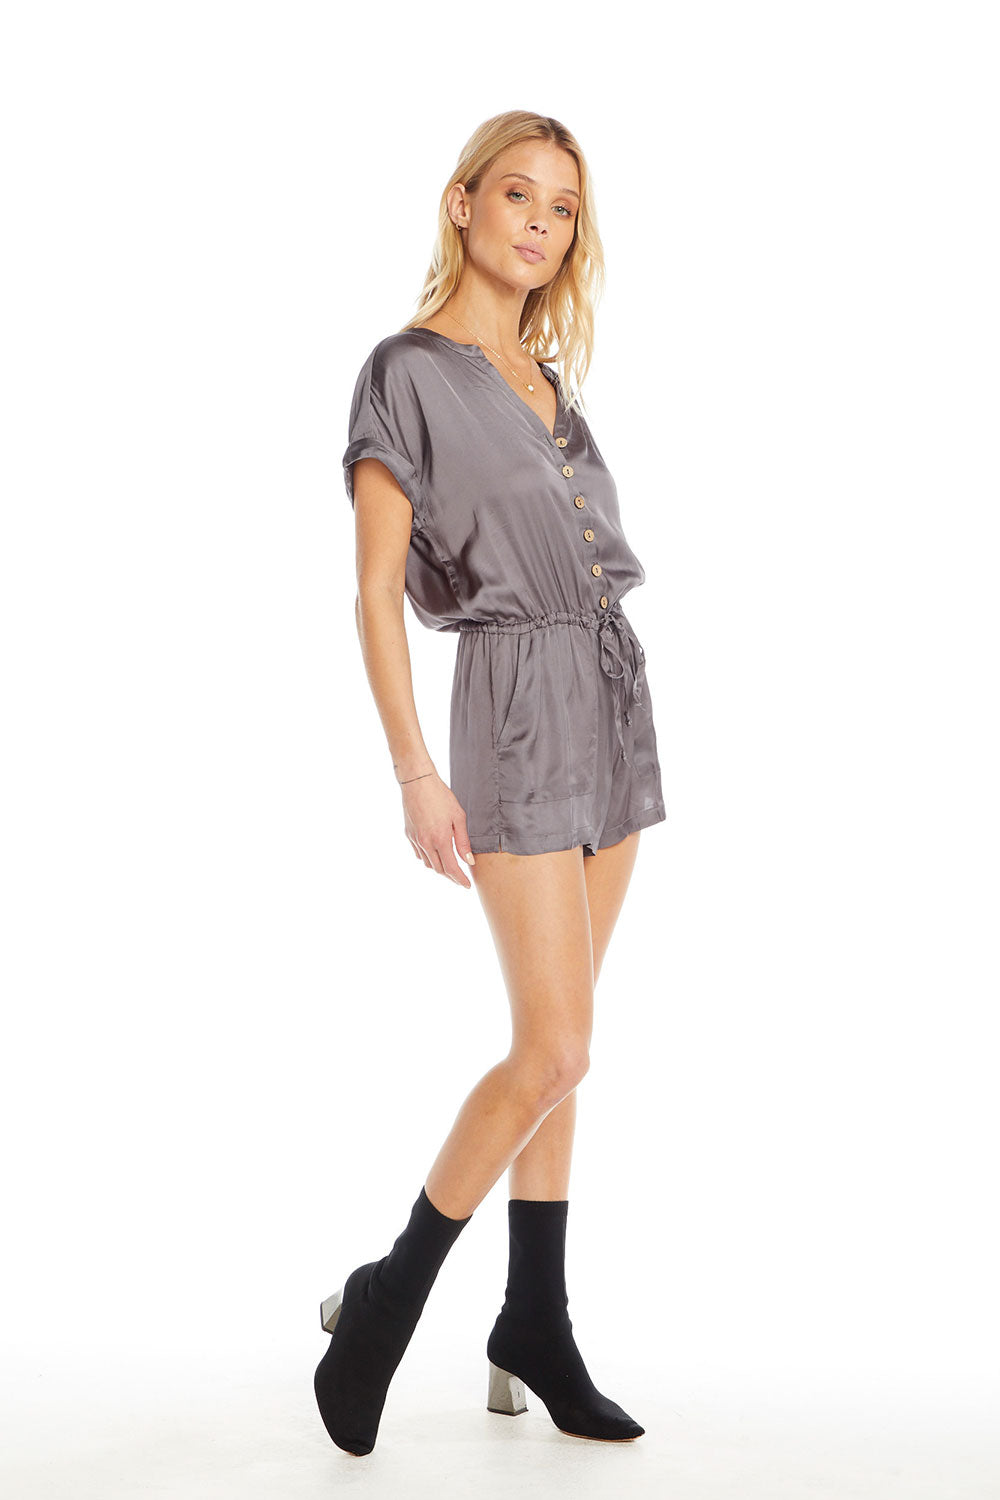 Silky Basics Short Sleeve Drop Shoulder Drawstring Waist Button Down Romper WOMENS chaserbrand4.myshopify.com